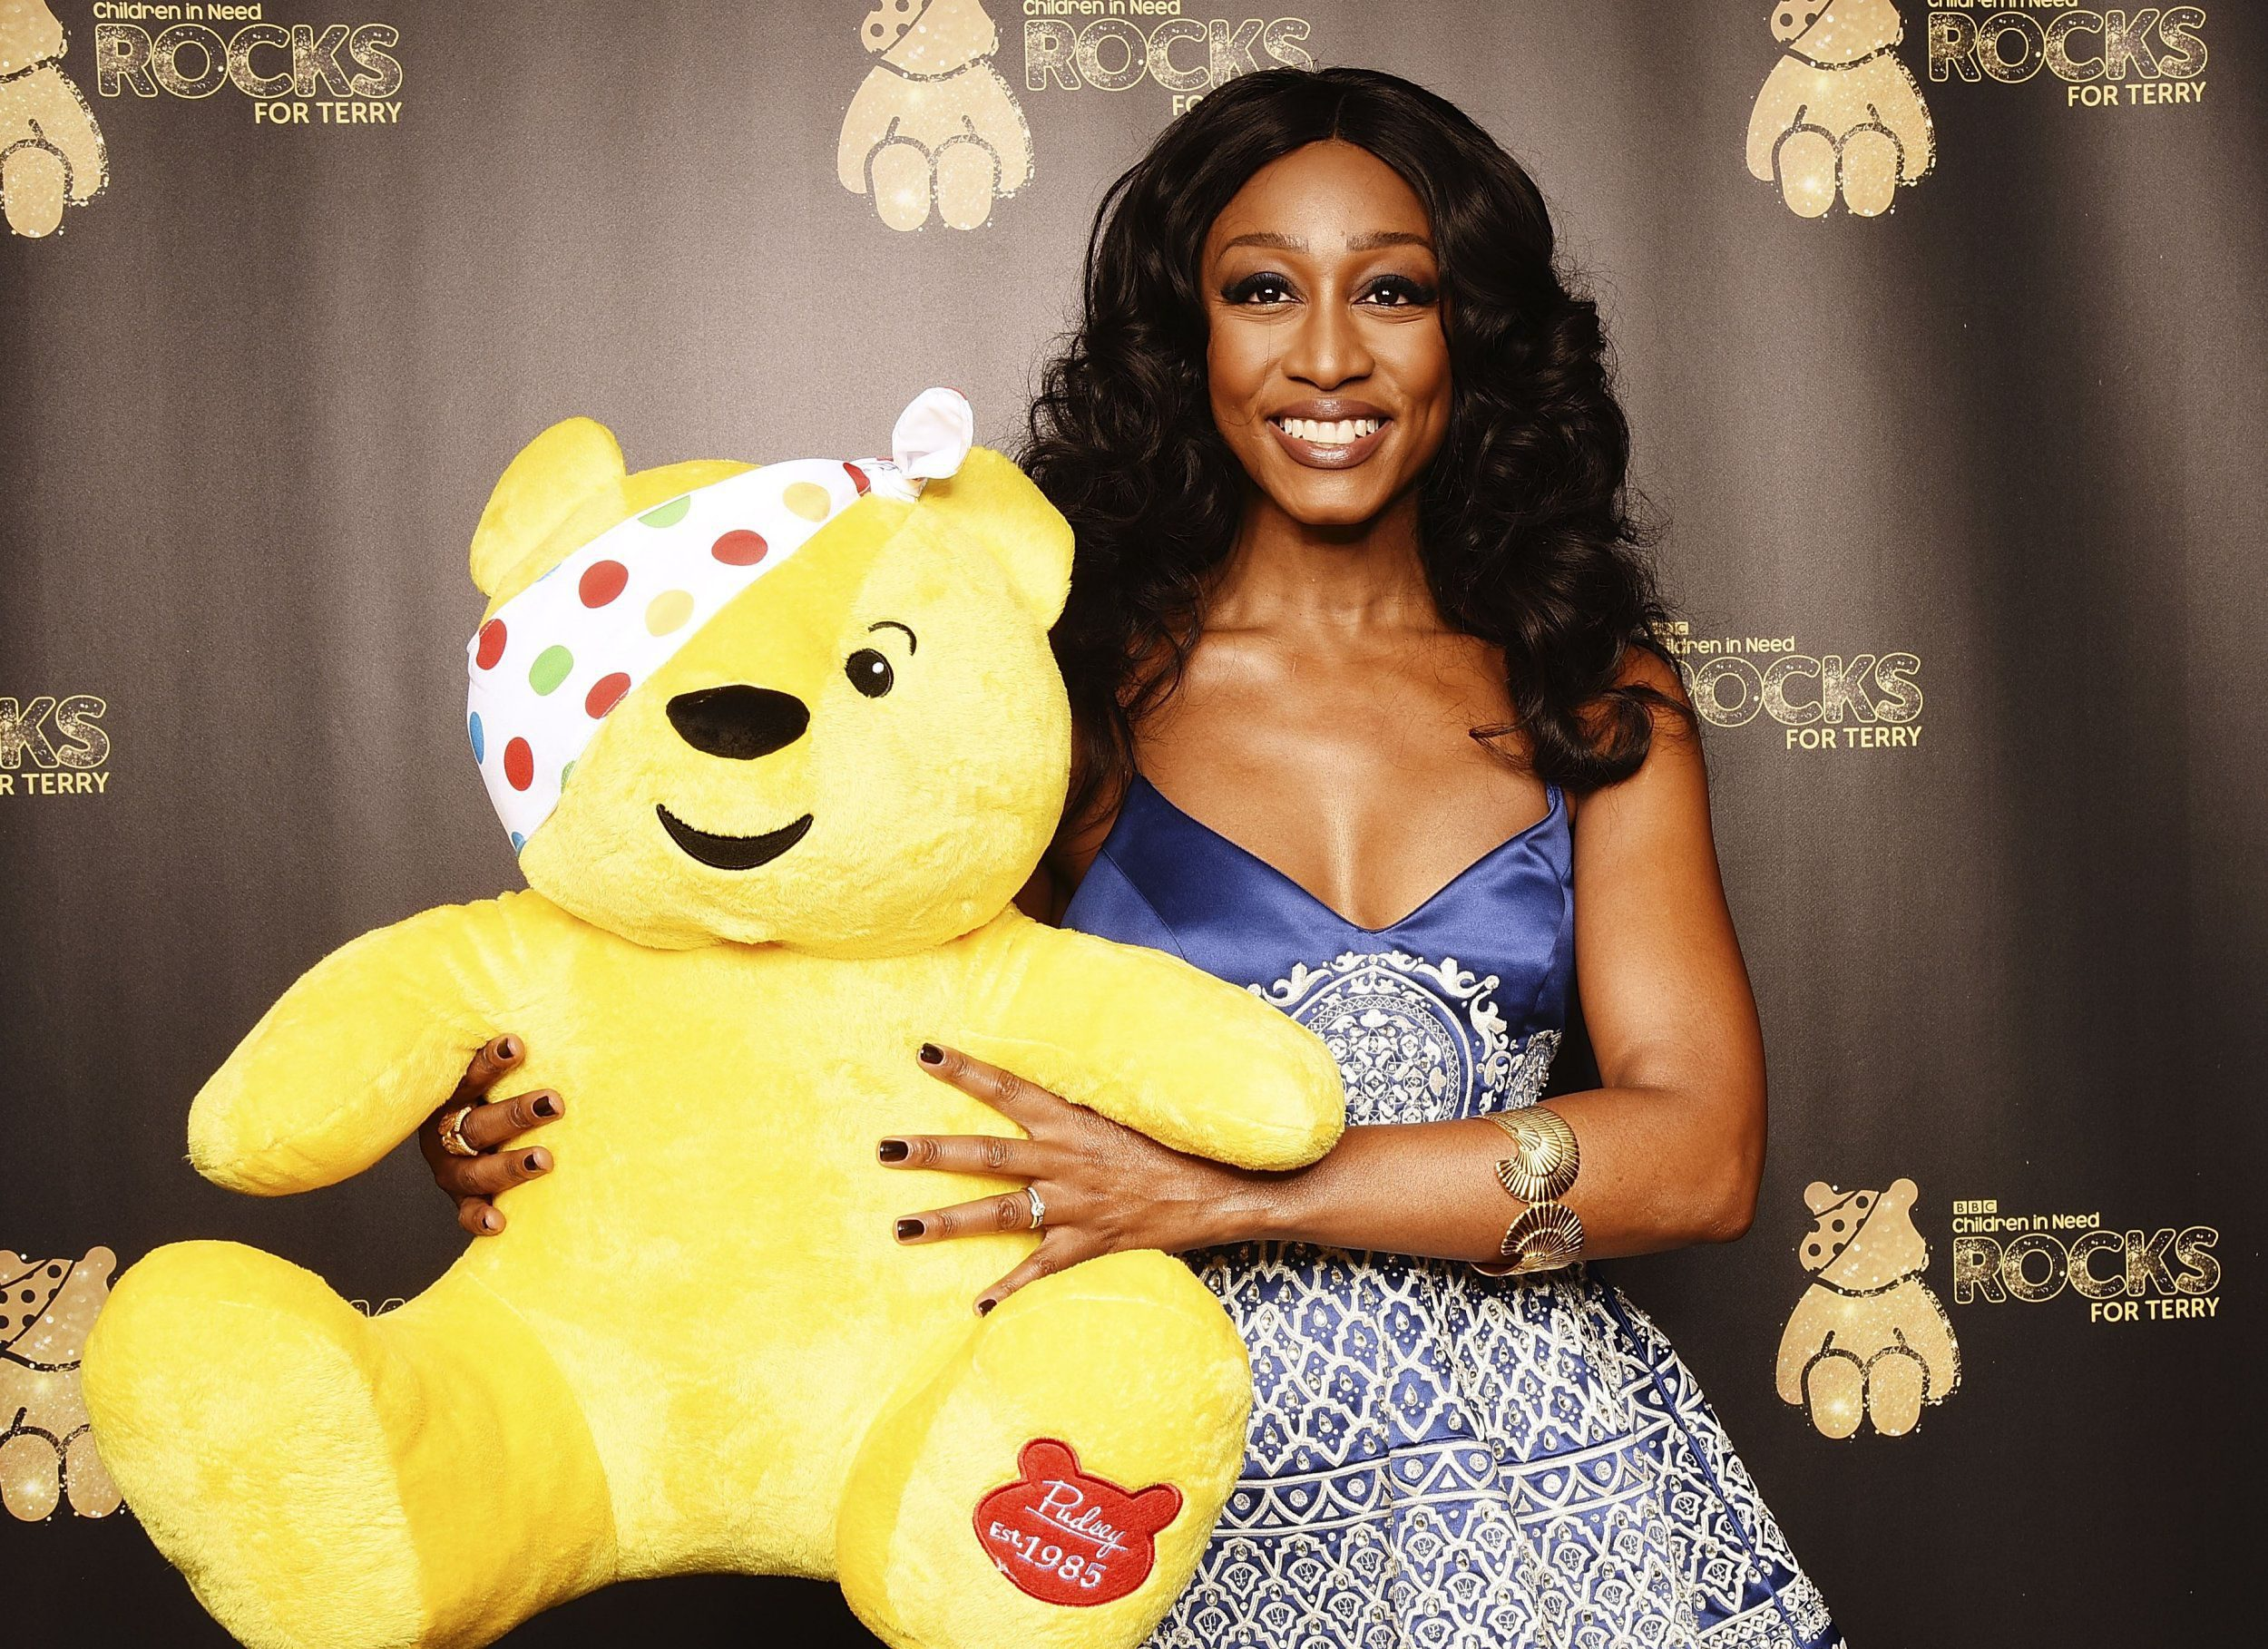 LONDON, ENGLAND - NOVEMBER 01: Beverley Knight supports BBC Children in Need Rocks for Terry at Royal Albert Hall on November 1, 2016 in London, England. (Photo by Dave J Hogan/Dave J Hogan/Getty Images)